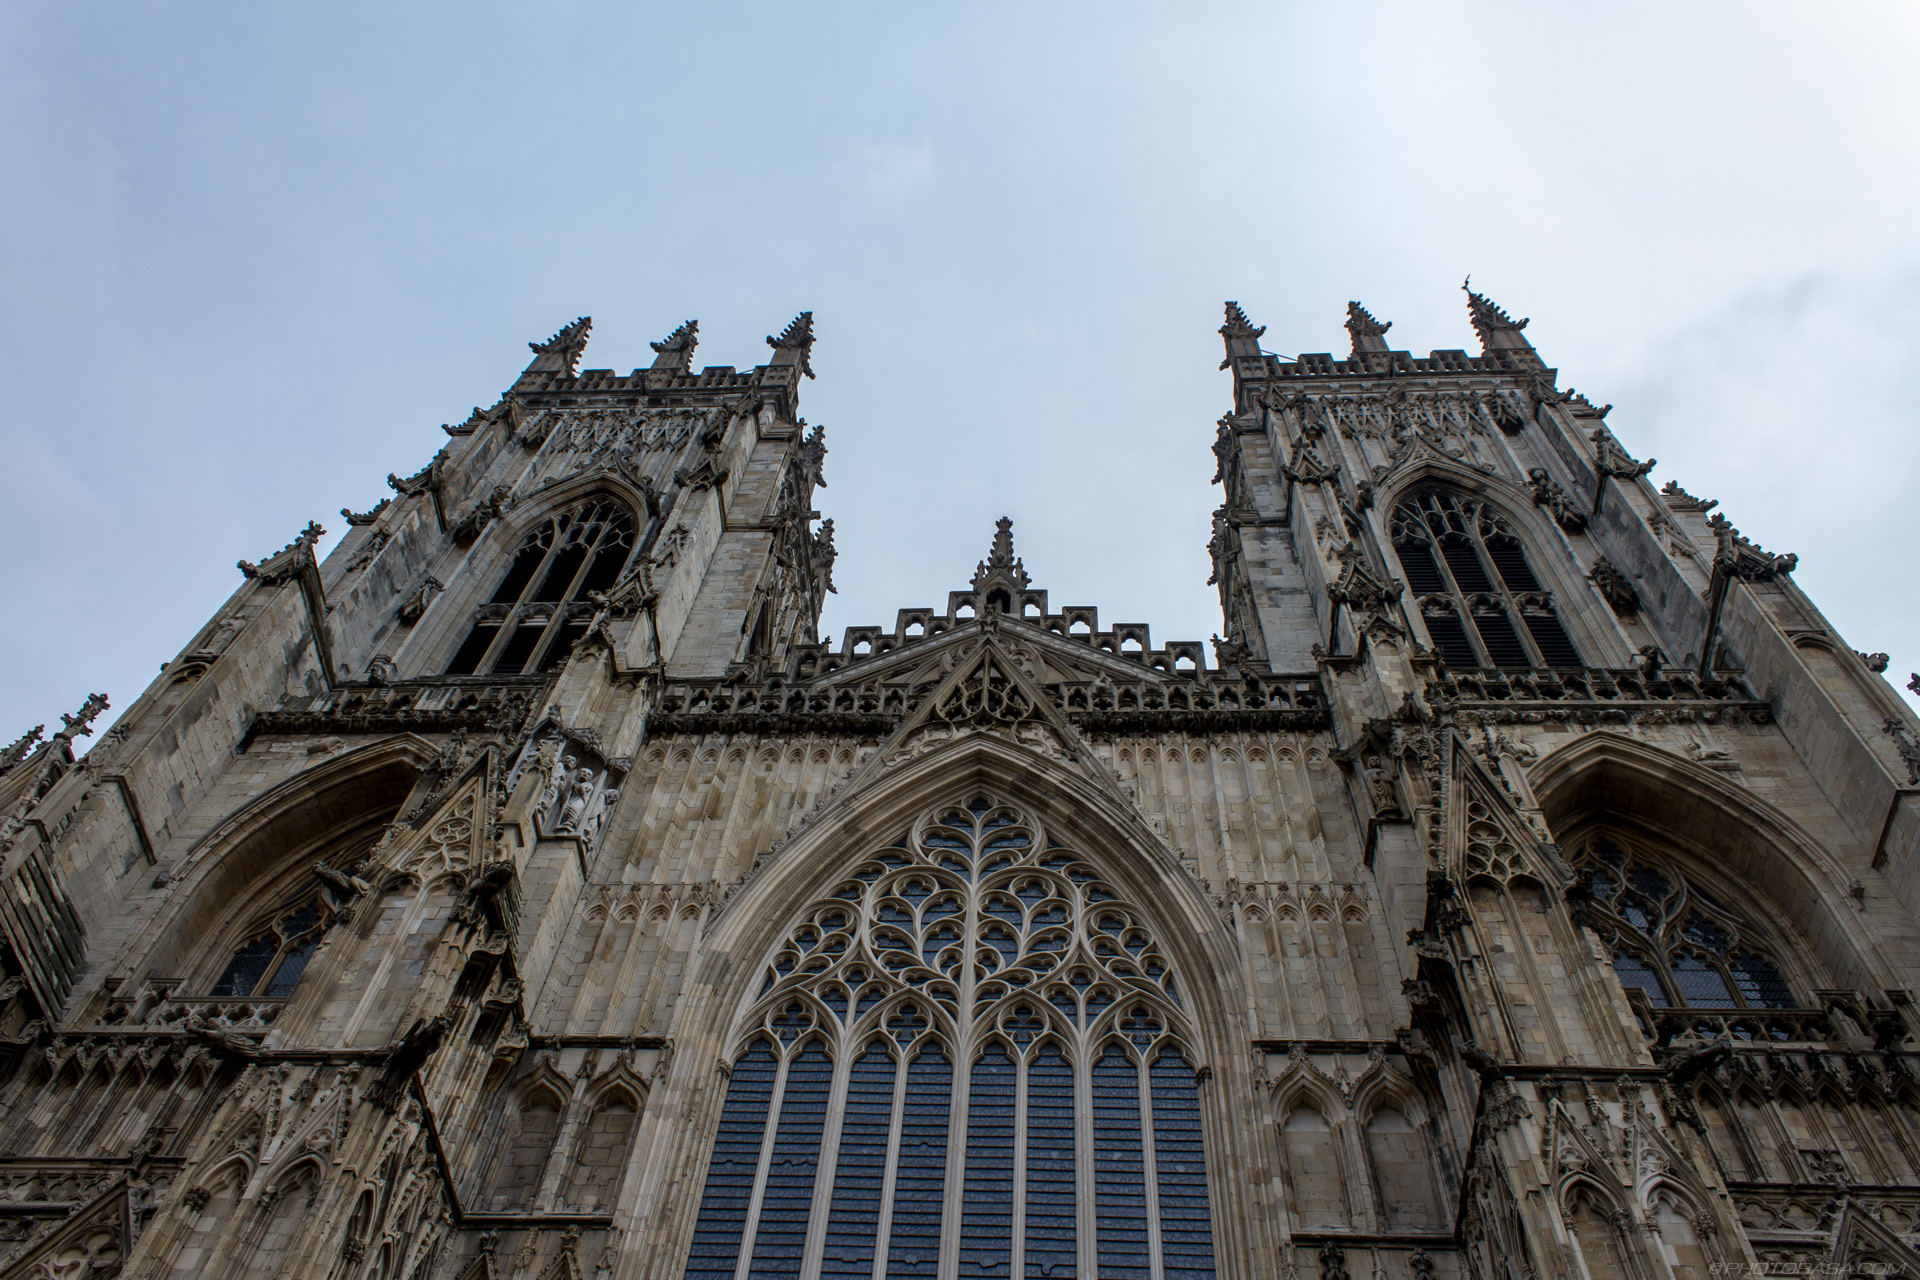 http://photorasa.com/yorkminster-cathedral/towers-above-entrance/